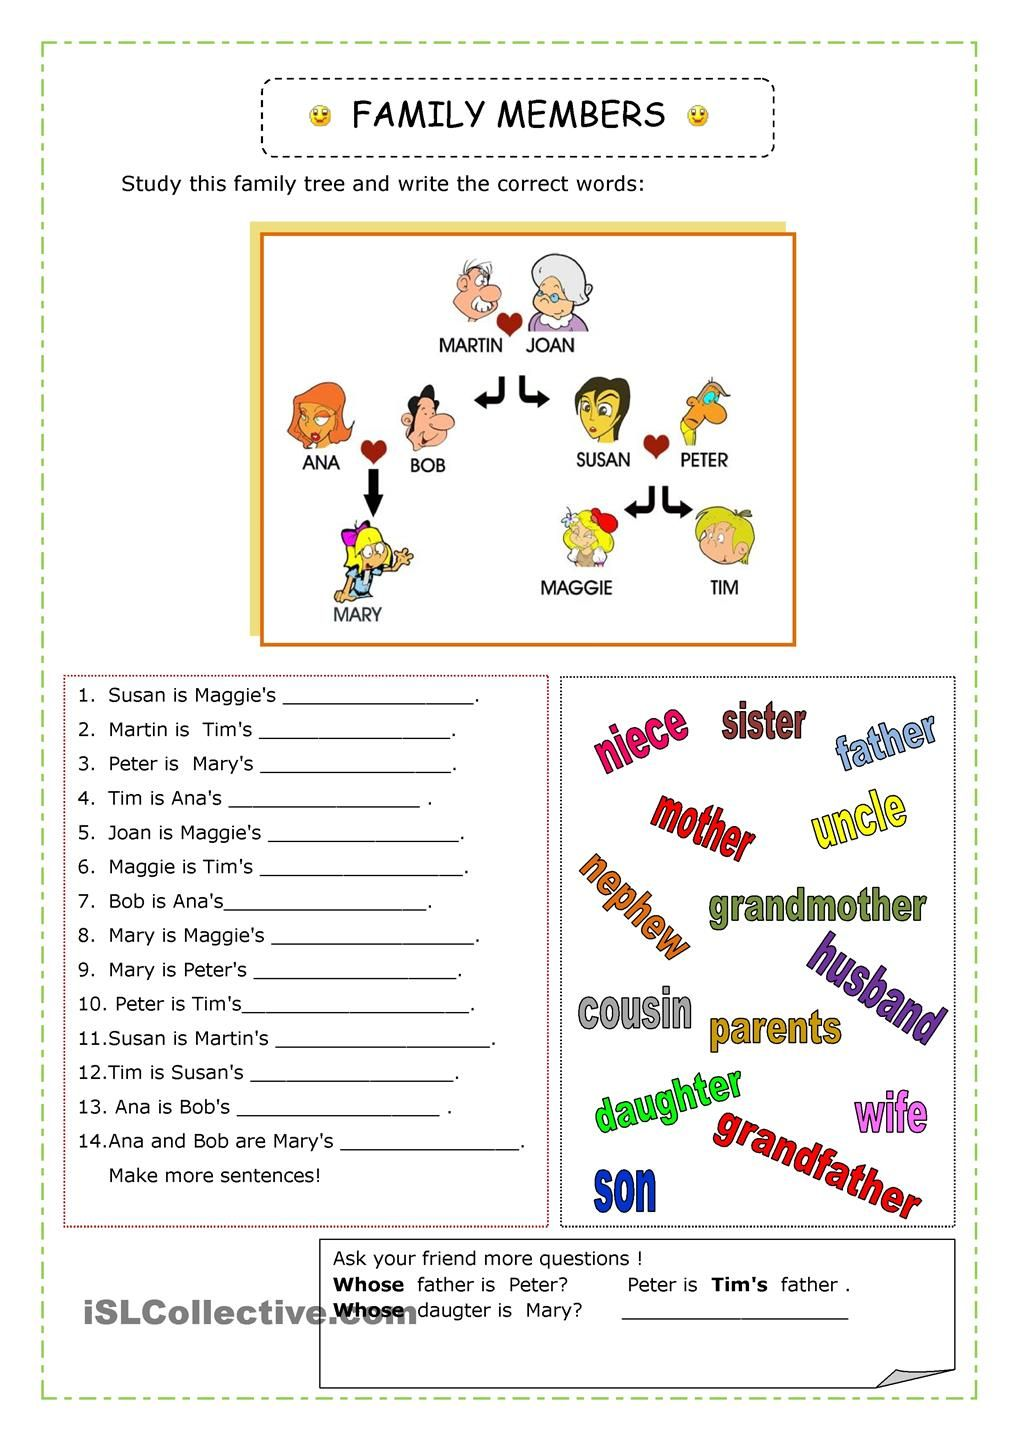 Printables Esl Worksheets Pdf esl worksheets pdf syndeomedia 1000 images about family on pinterest tree worksheet